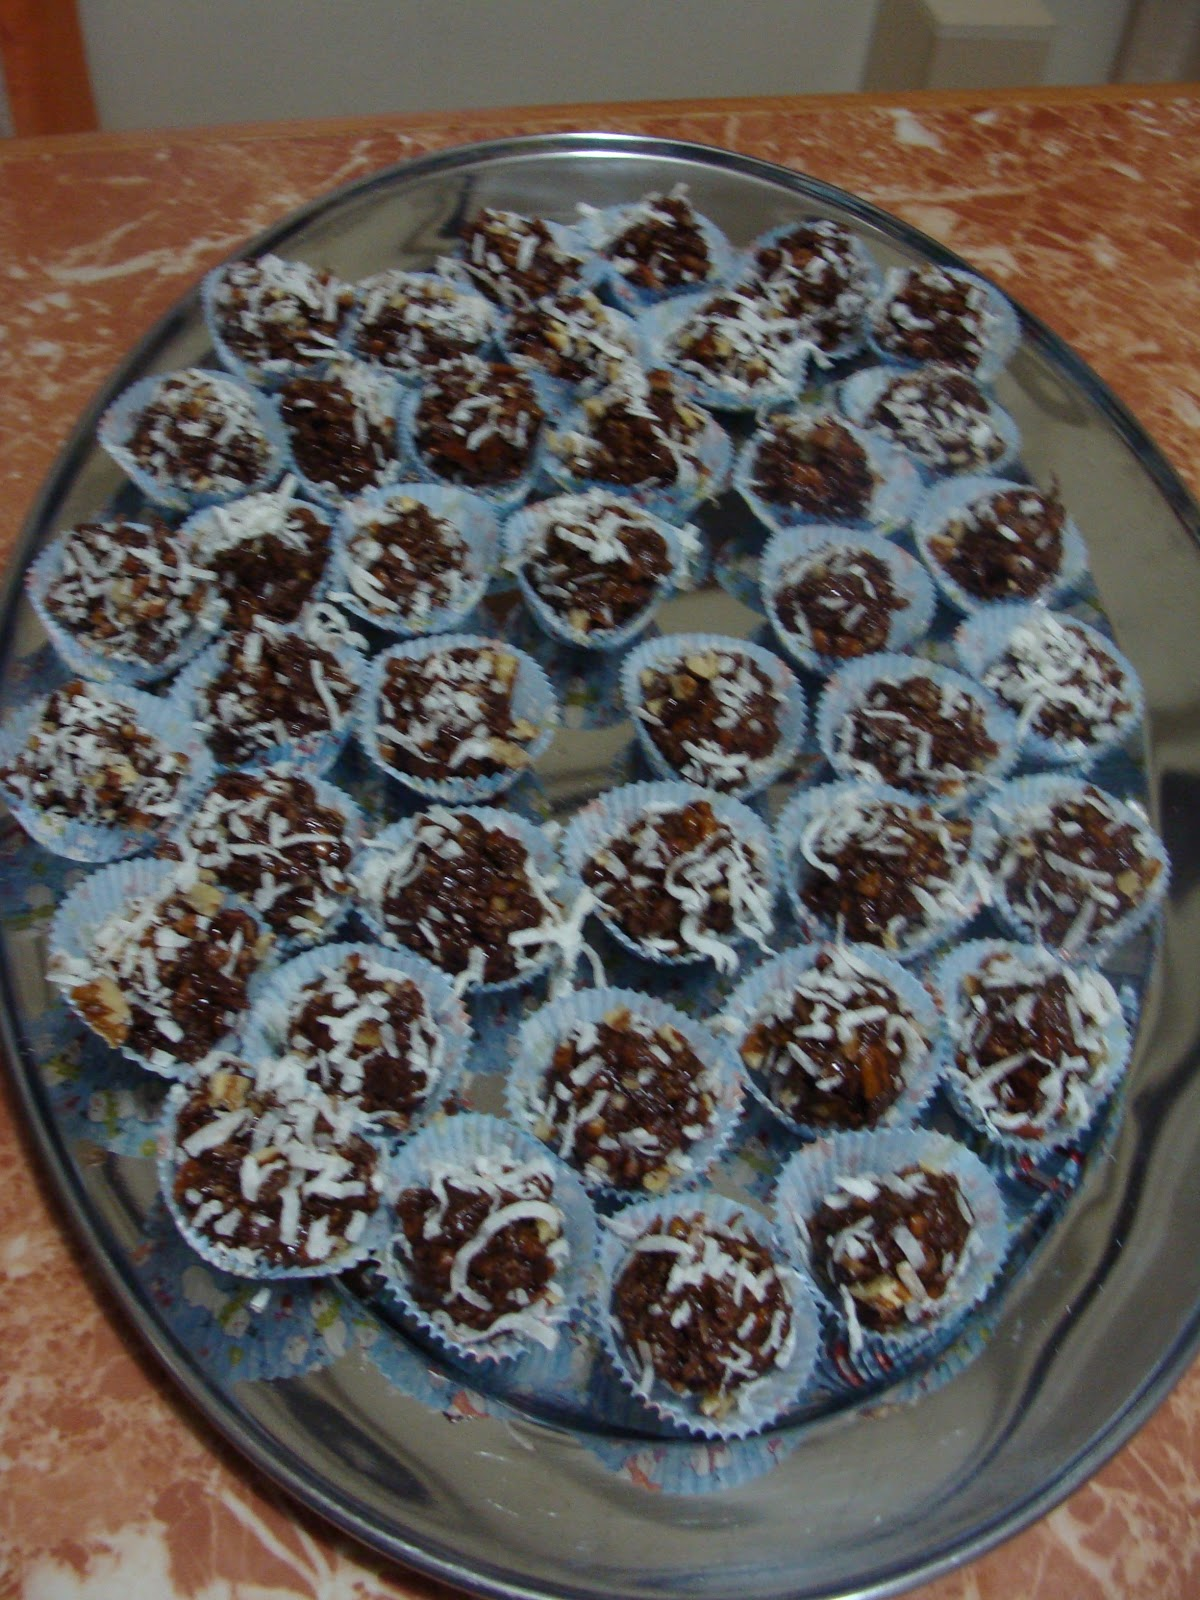 Albania or Bust: The Food Files: Coconut Bourbon Balls